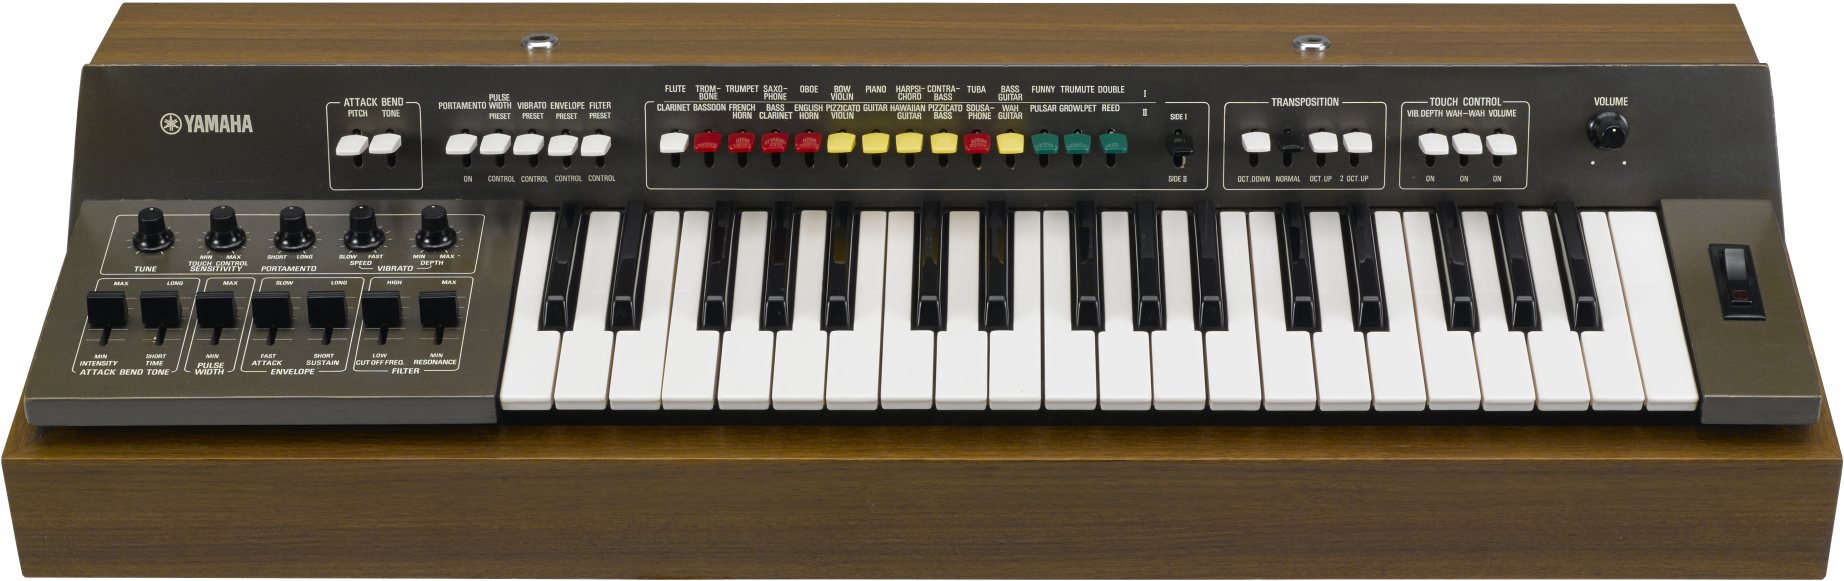 antiques roadshow yamaha to celebrate its synth legacy with vintage gear cdm create digital music. Black Bedroom Furniture Sets. Home Design Ideas